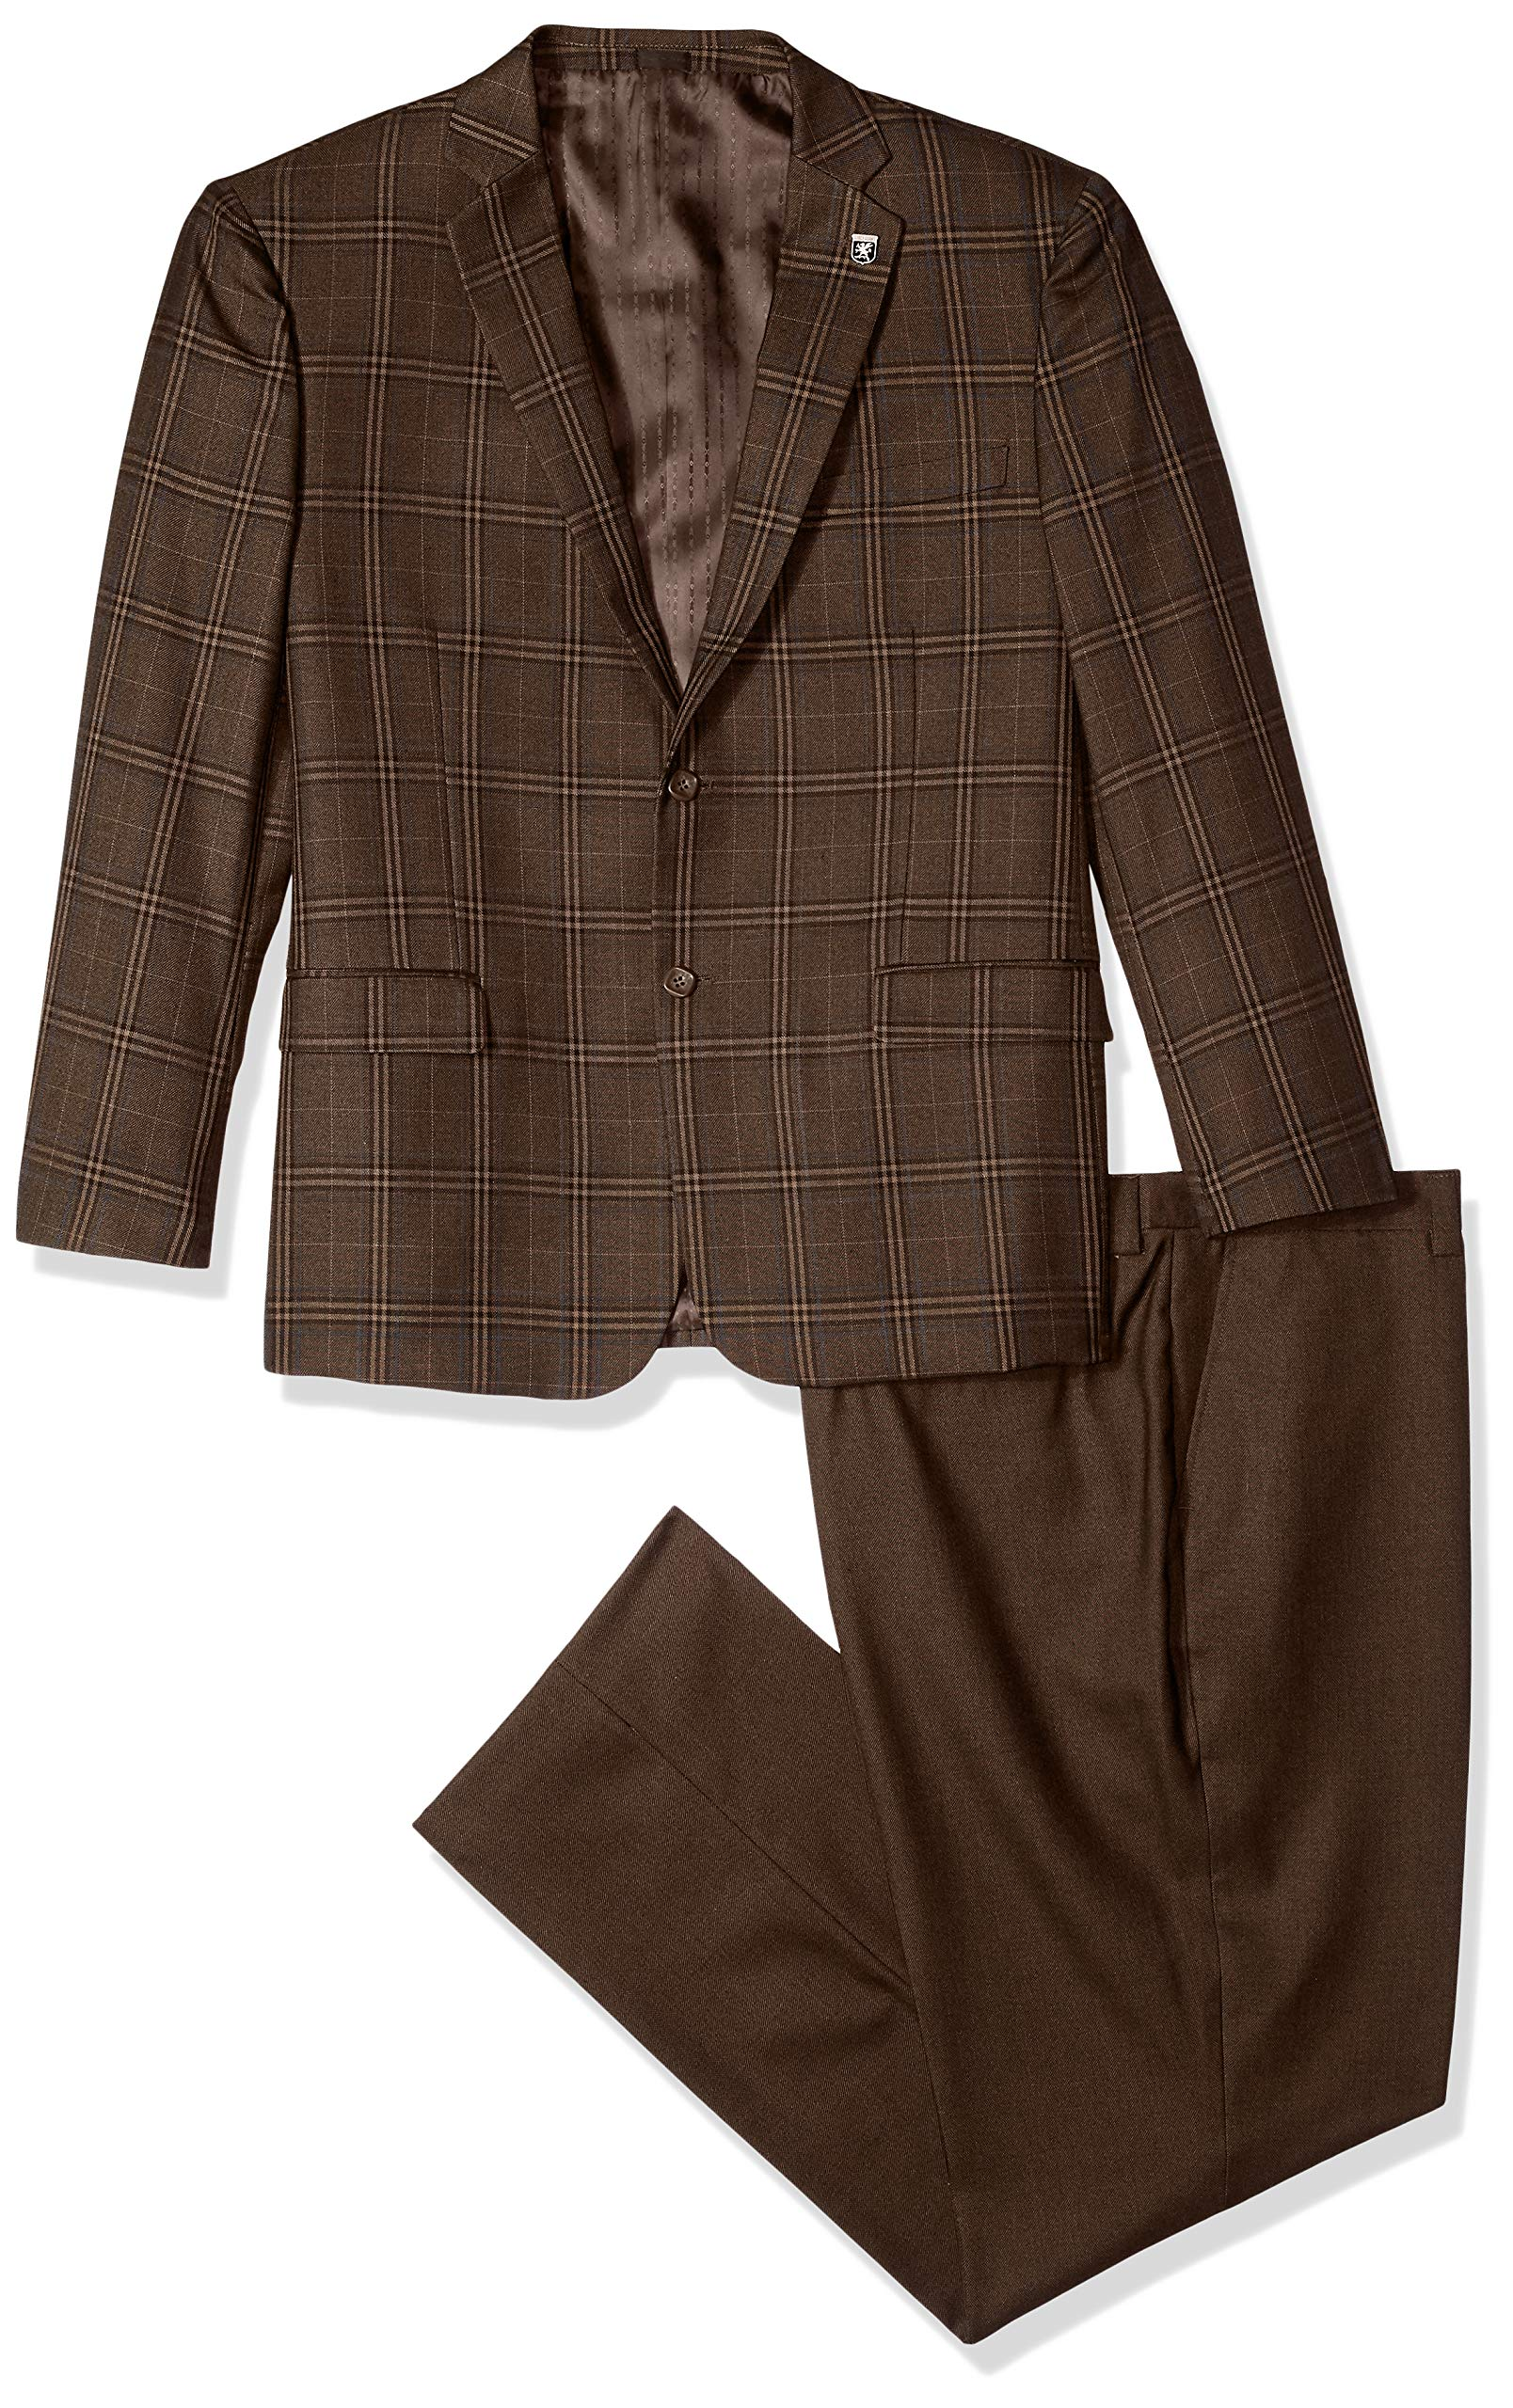 STACY ADAMS Men's Big and Tall 4-Piece Notch Lapel Plaid Vested Suit with 2 Pants, Brown/tan, 52 Regular